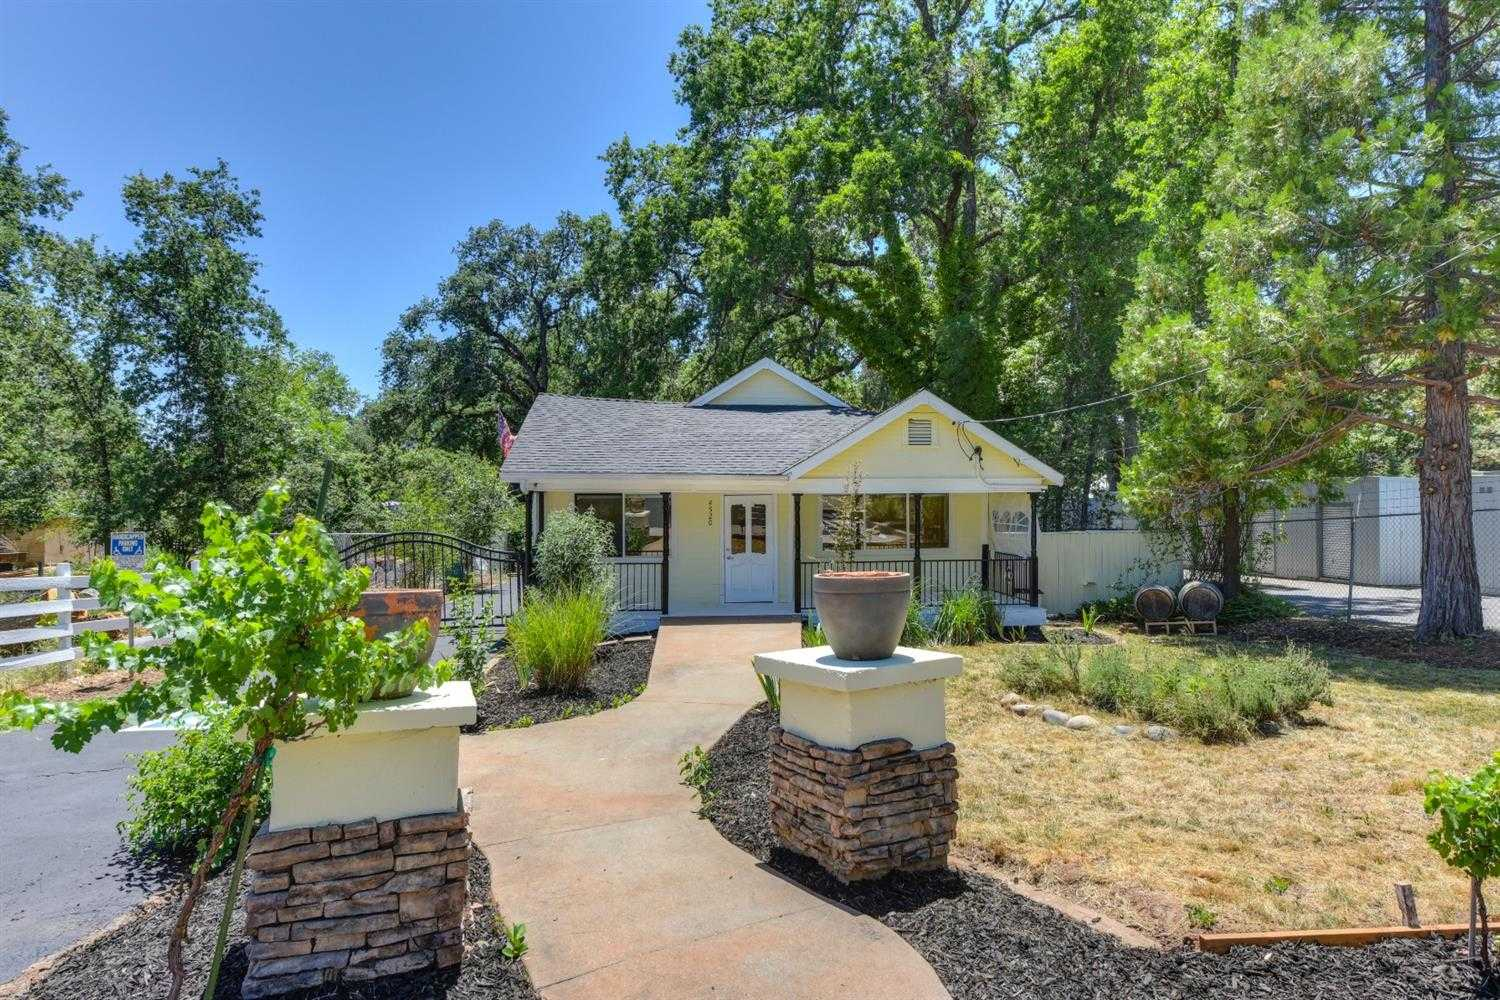 $327,500 - 3Br/2Ba -  for Sale in Placerville